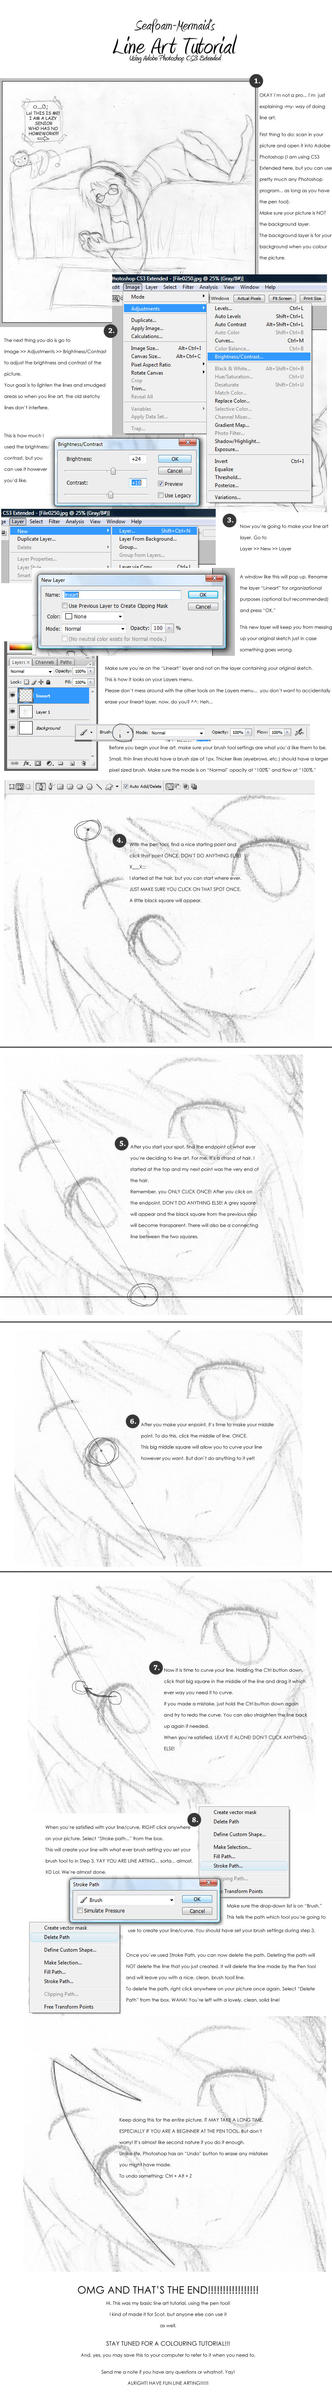 Line Art Tutorial Photo : Line art tutorial ps cs by jennywheat on deviantart